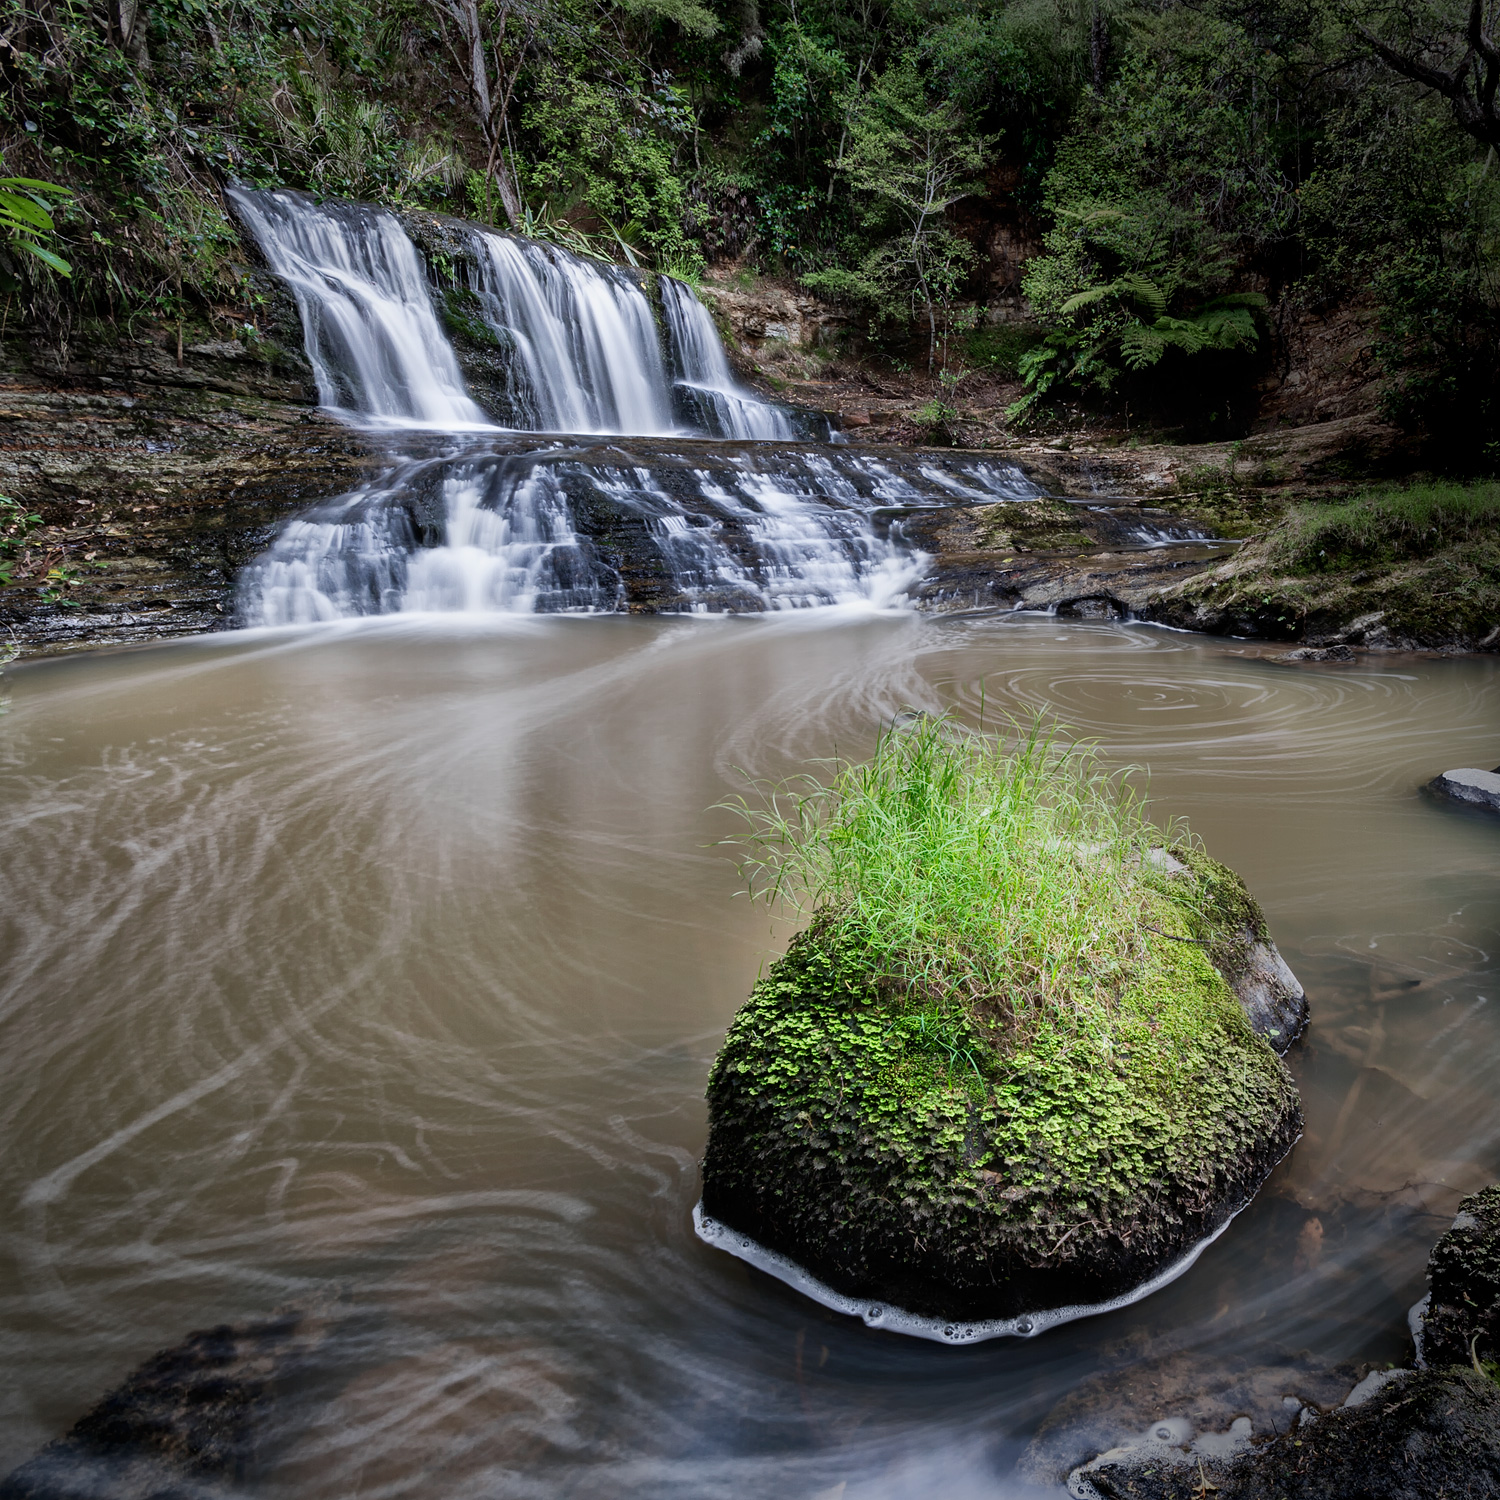 Waitangi Stream Cascade three - 10mm | 5, 20 & 30sec (phew!) | f16 | ISO100